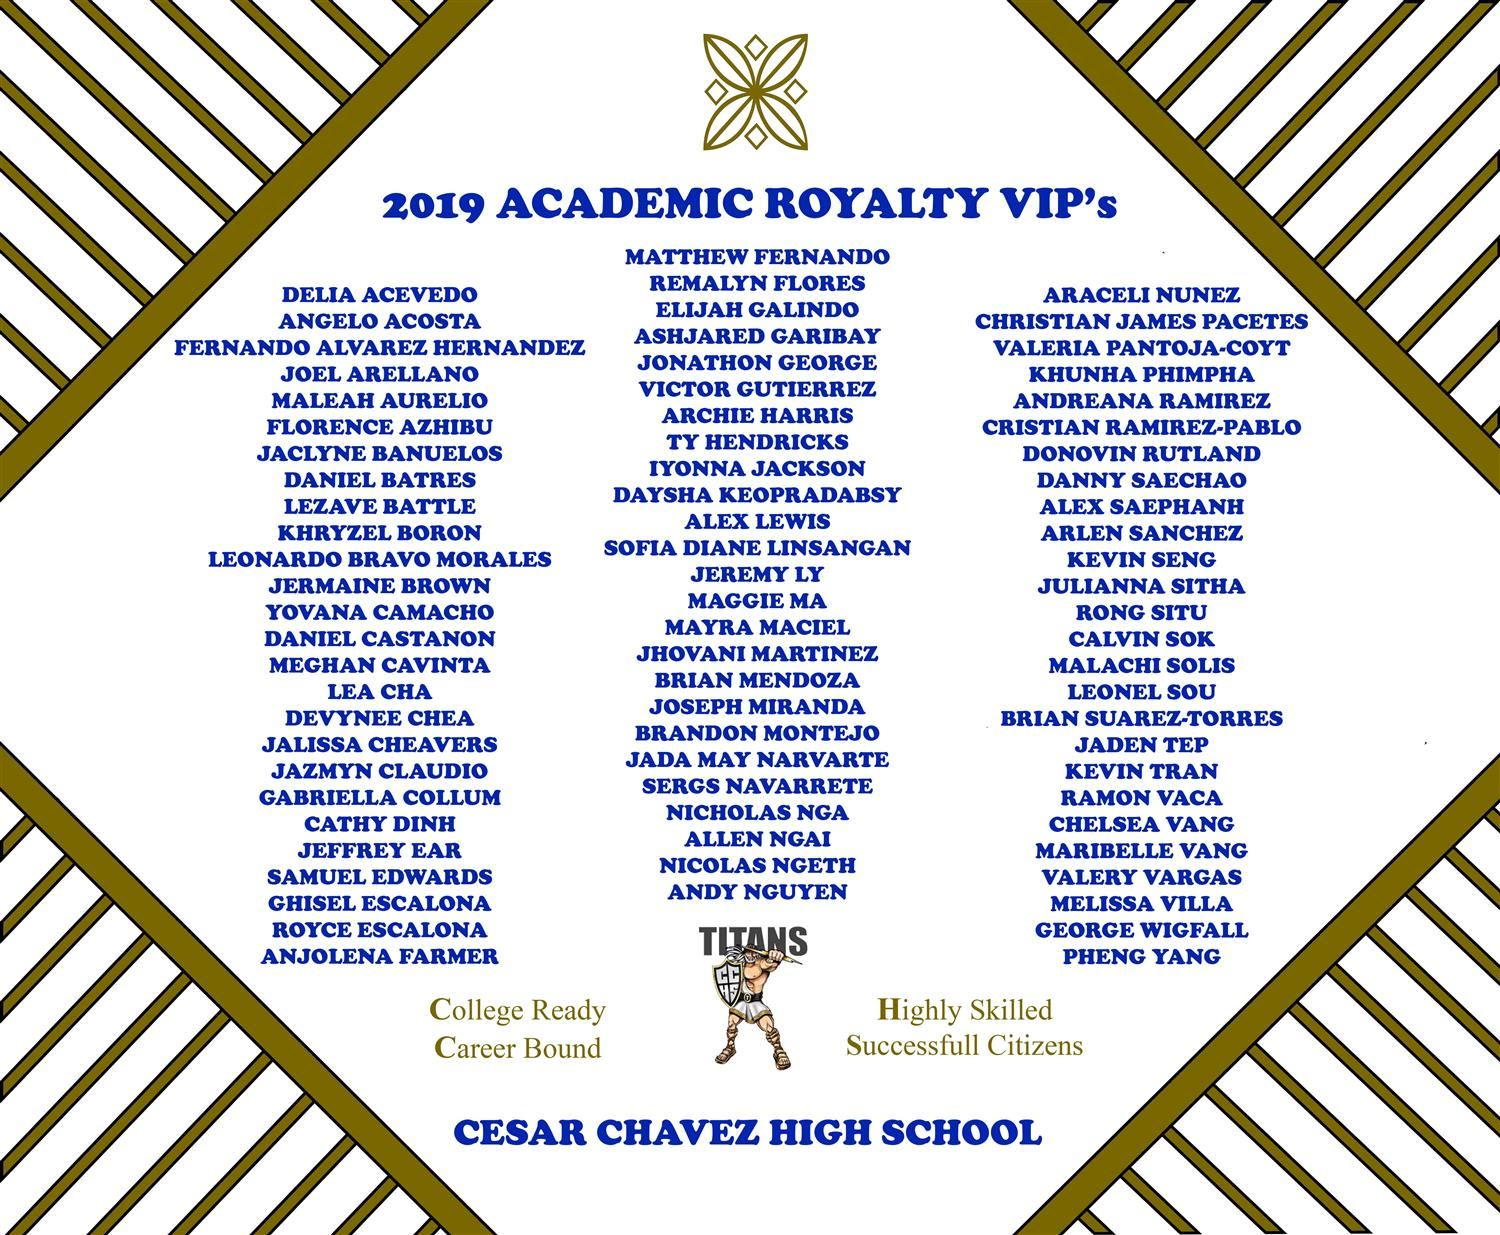 Academic Royalty VIP's